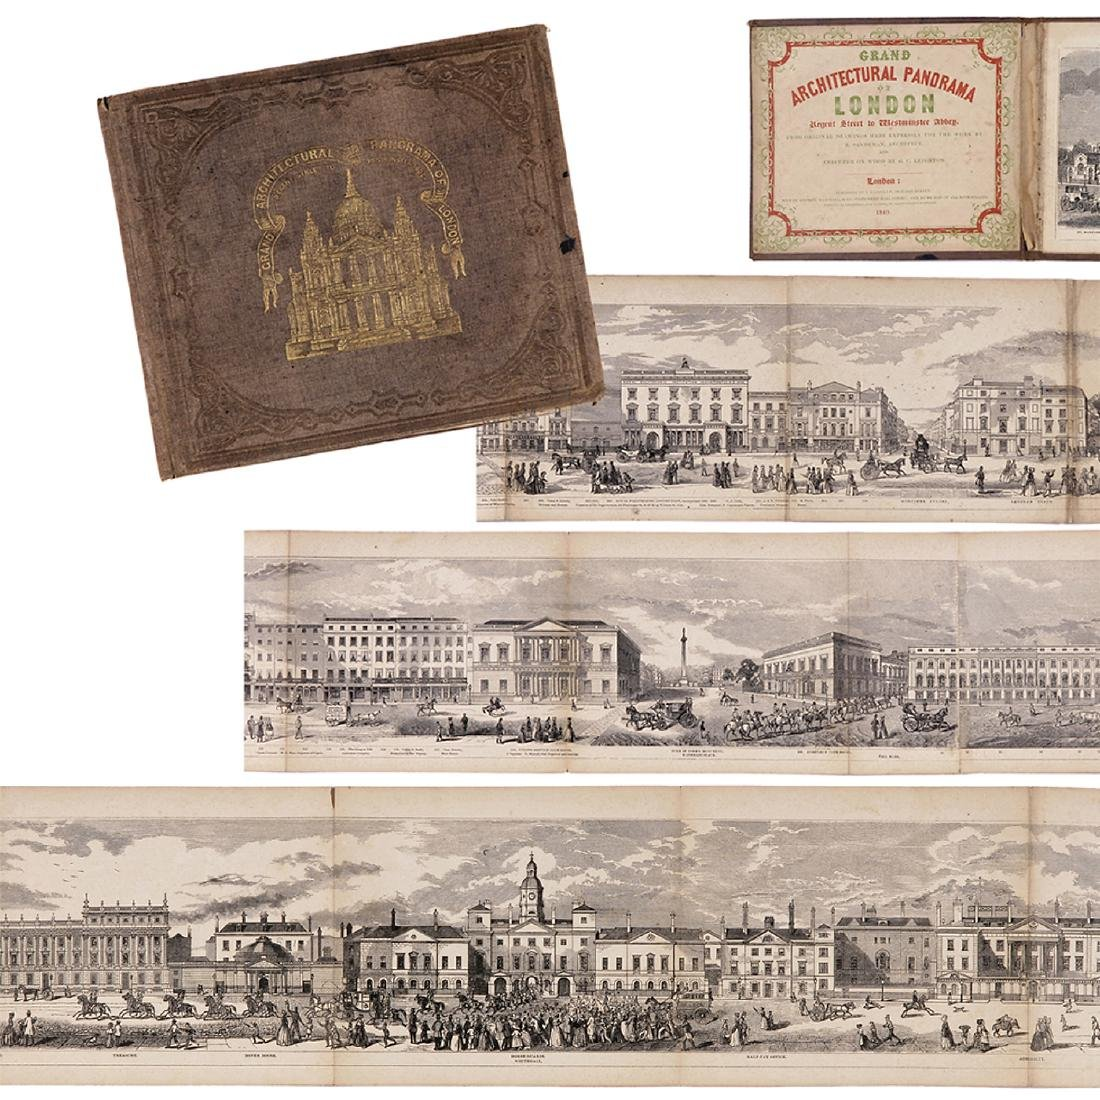 Grand Architectural Panorama of London by R. Sanderson